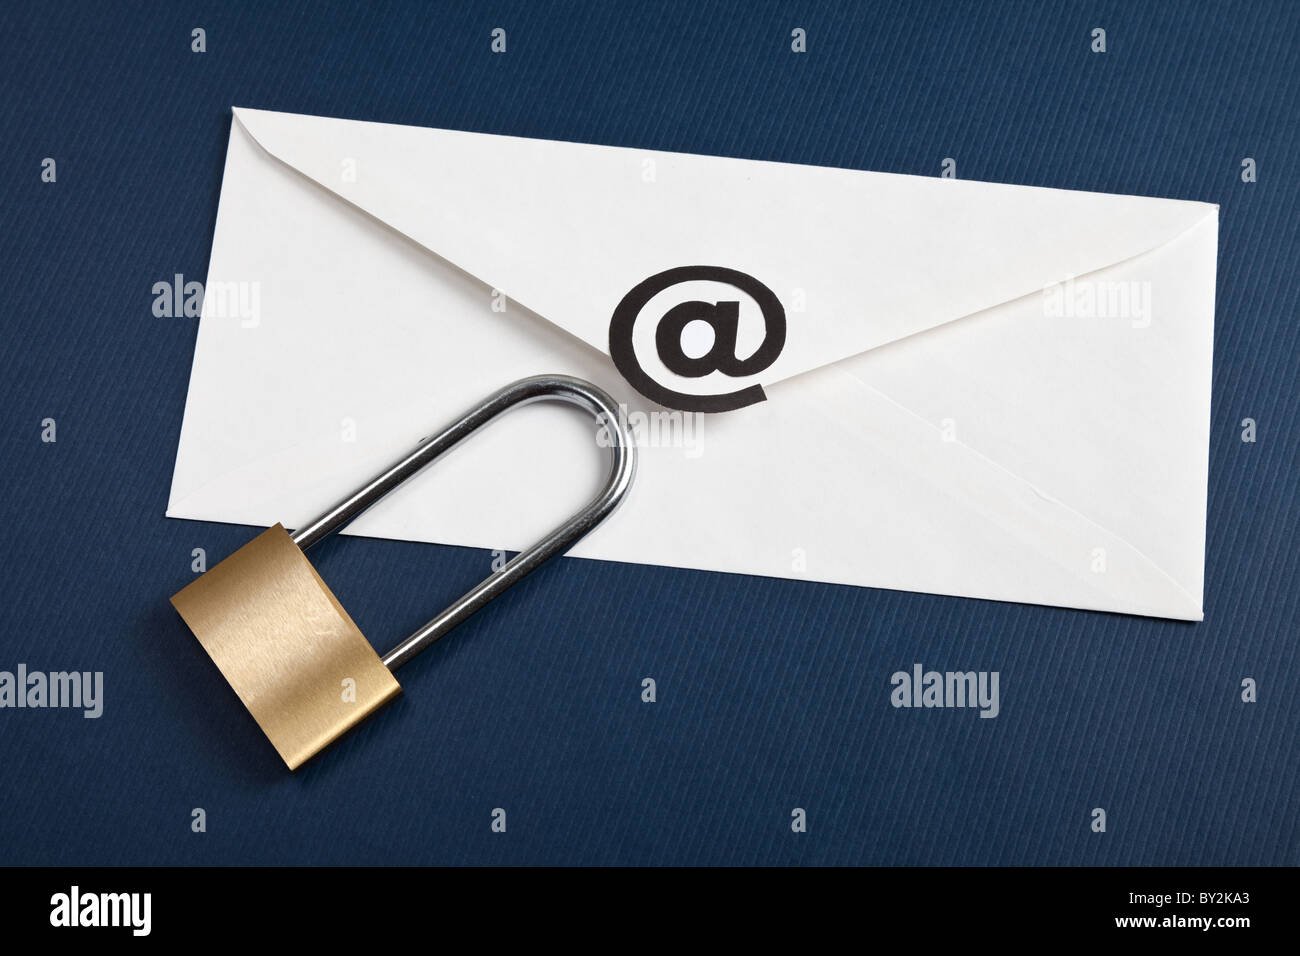 Envelope with @ Symbol and lock, concept of E-Mail Security - Stock Image